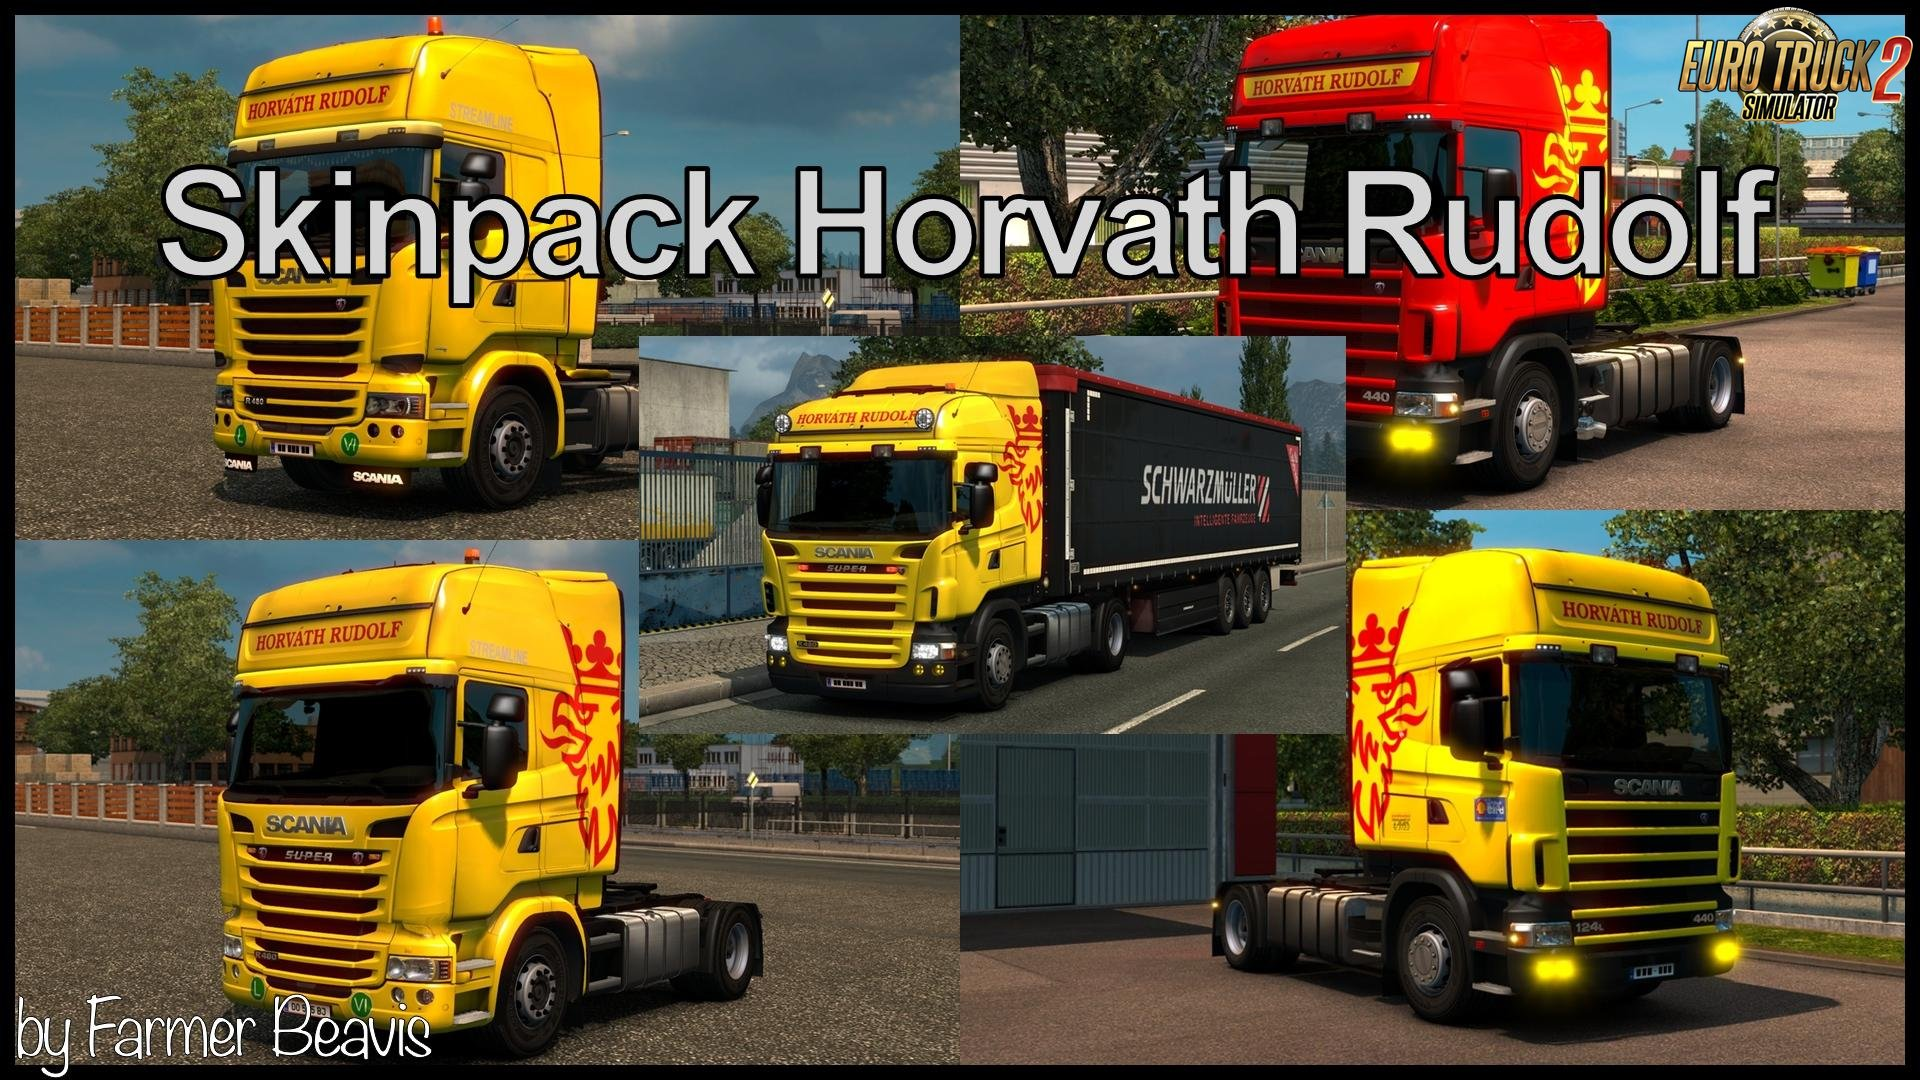 Horváth Rudolf Skinpack for Scania v2 in Ets2